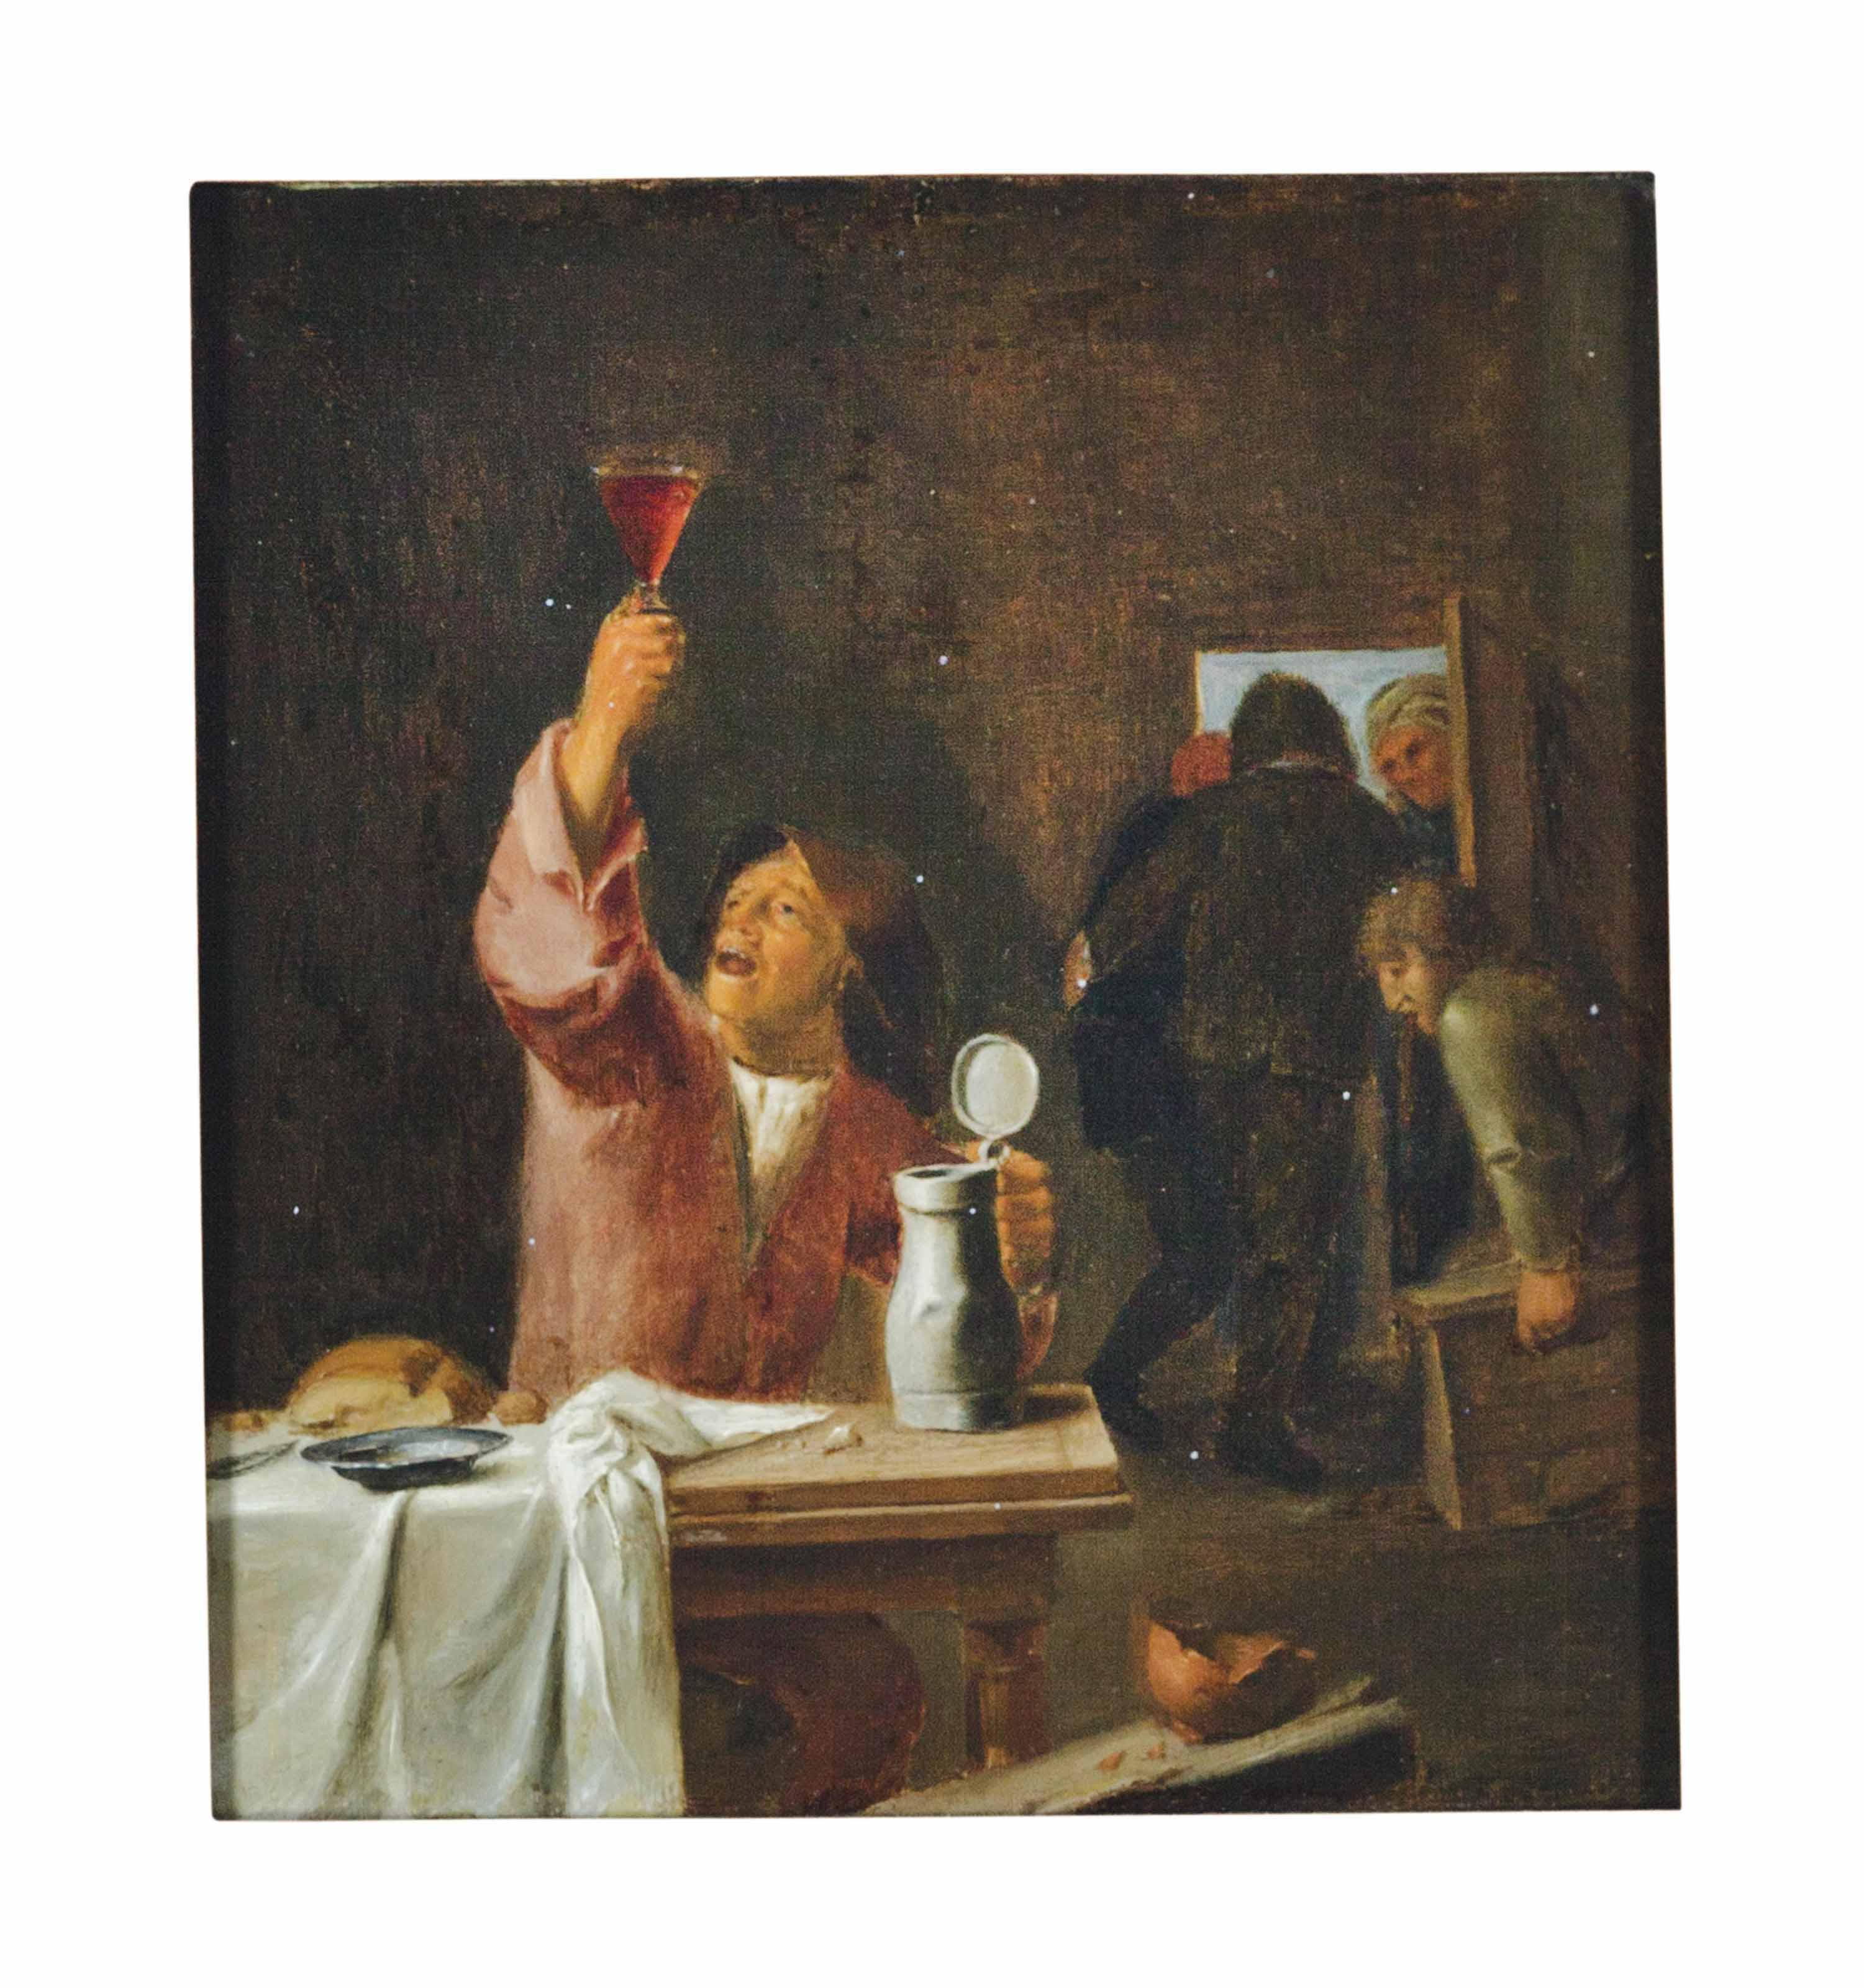 Tavern scene with a seated man holding a glass of wine